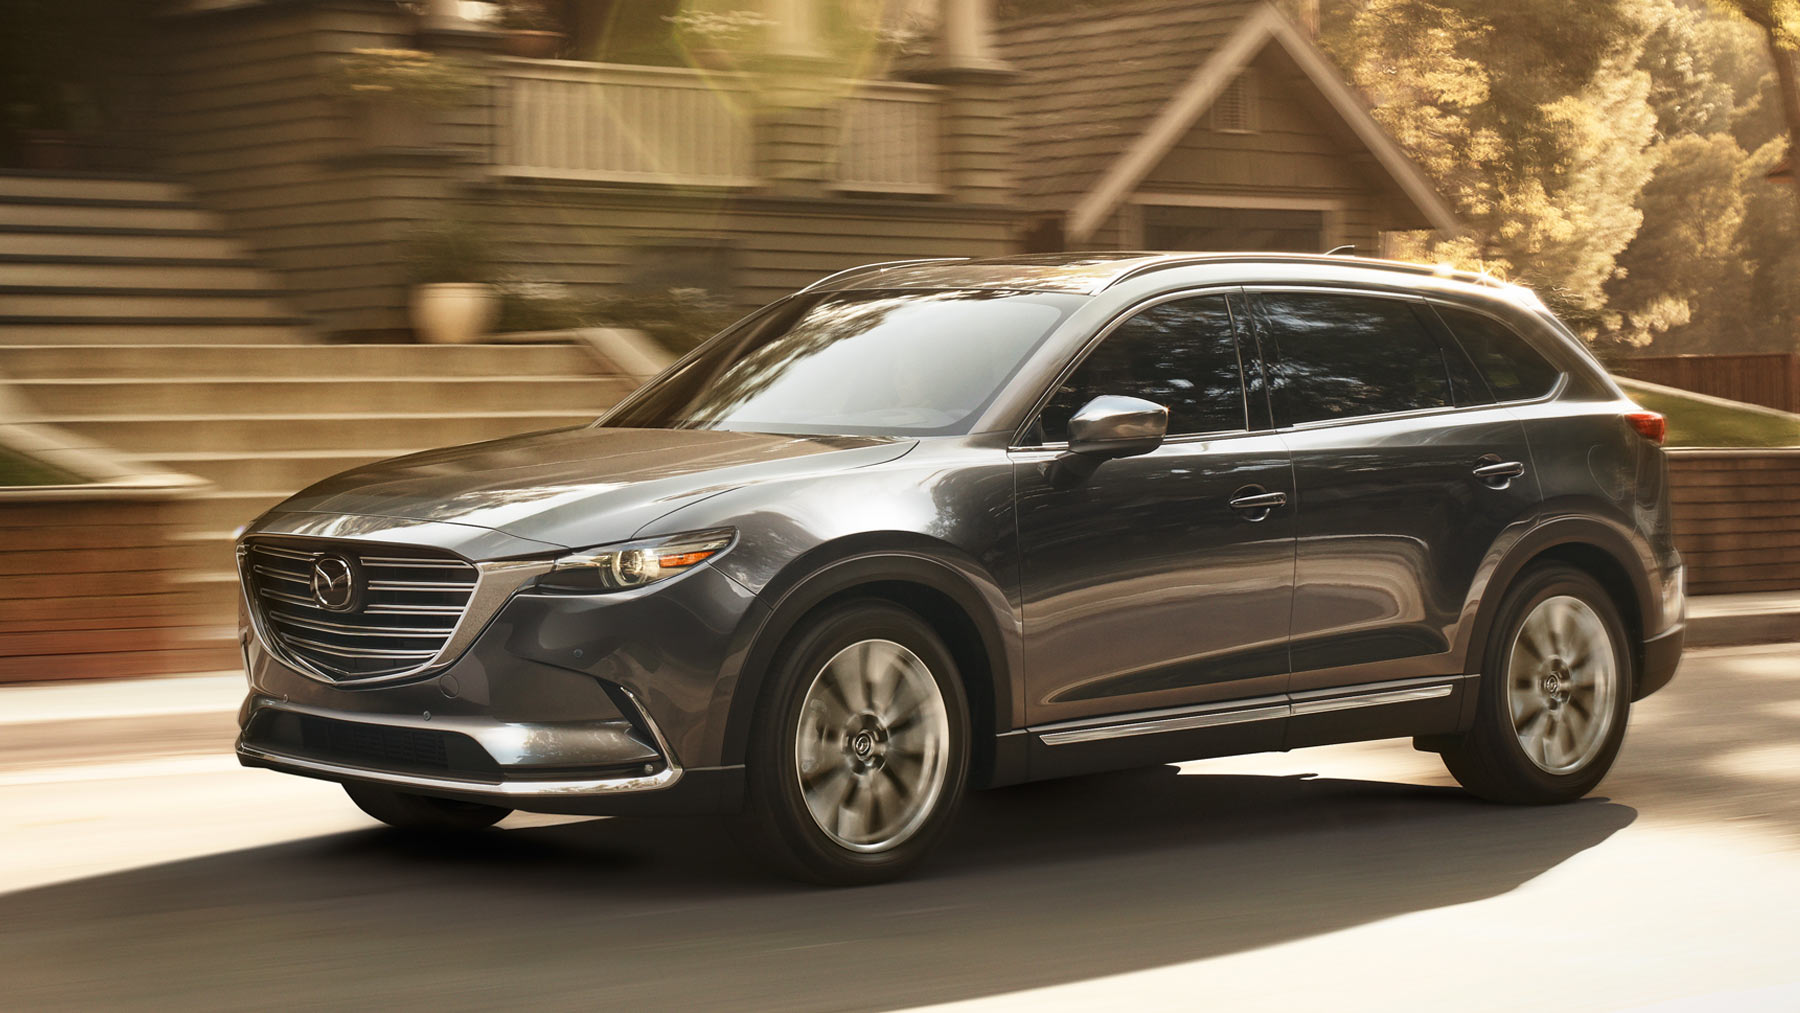 2018 Mazda CX-9 Gray Exterior Side View Driving